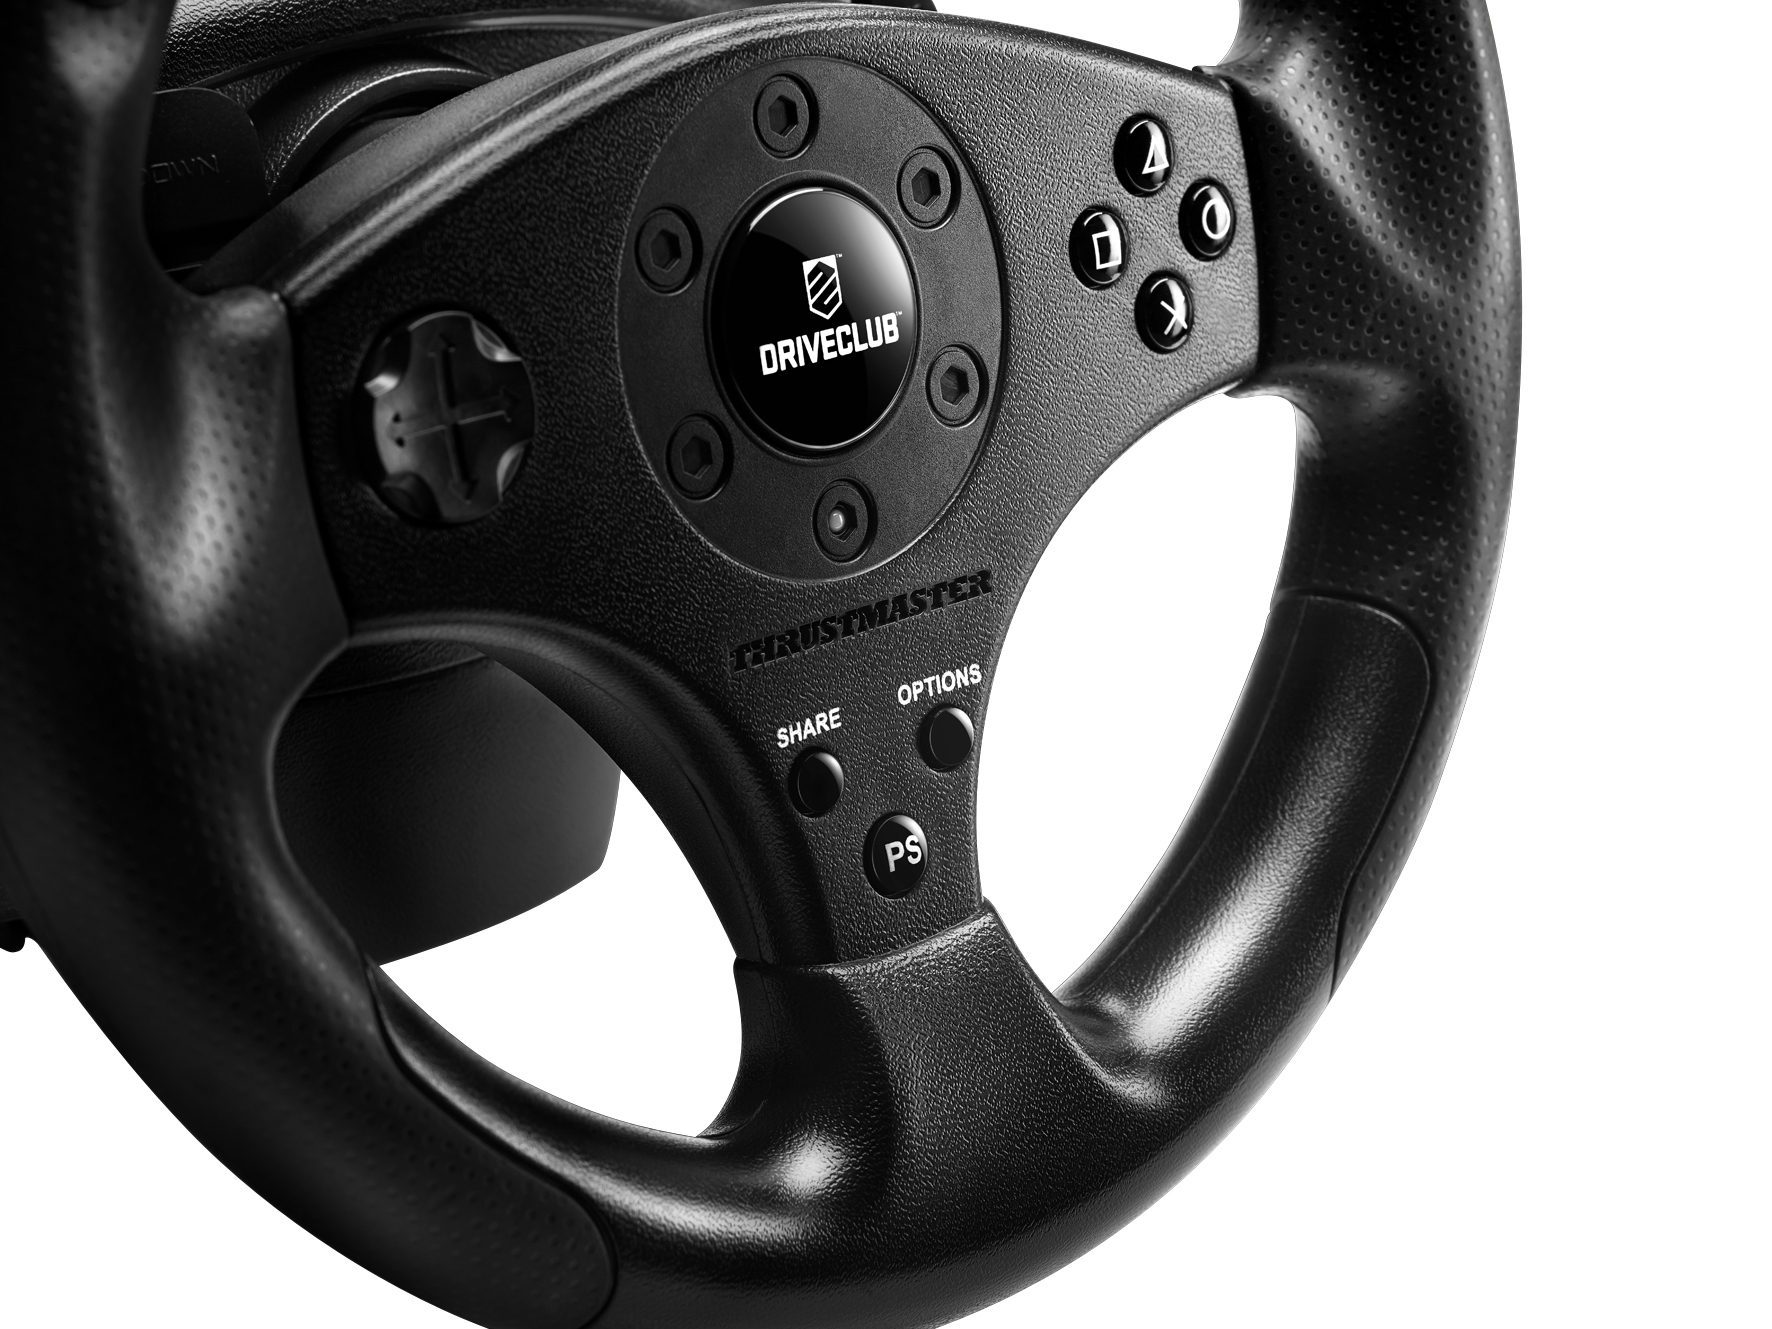 First official PS4 racing wheel announced: the Thrustmaster